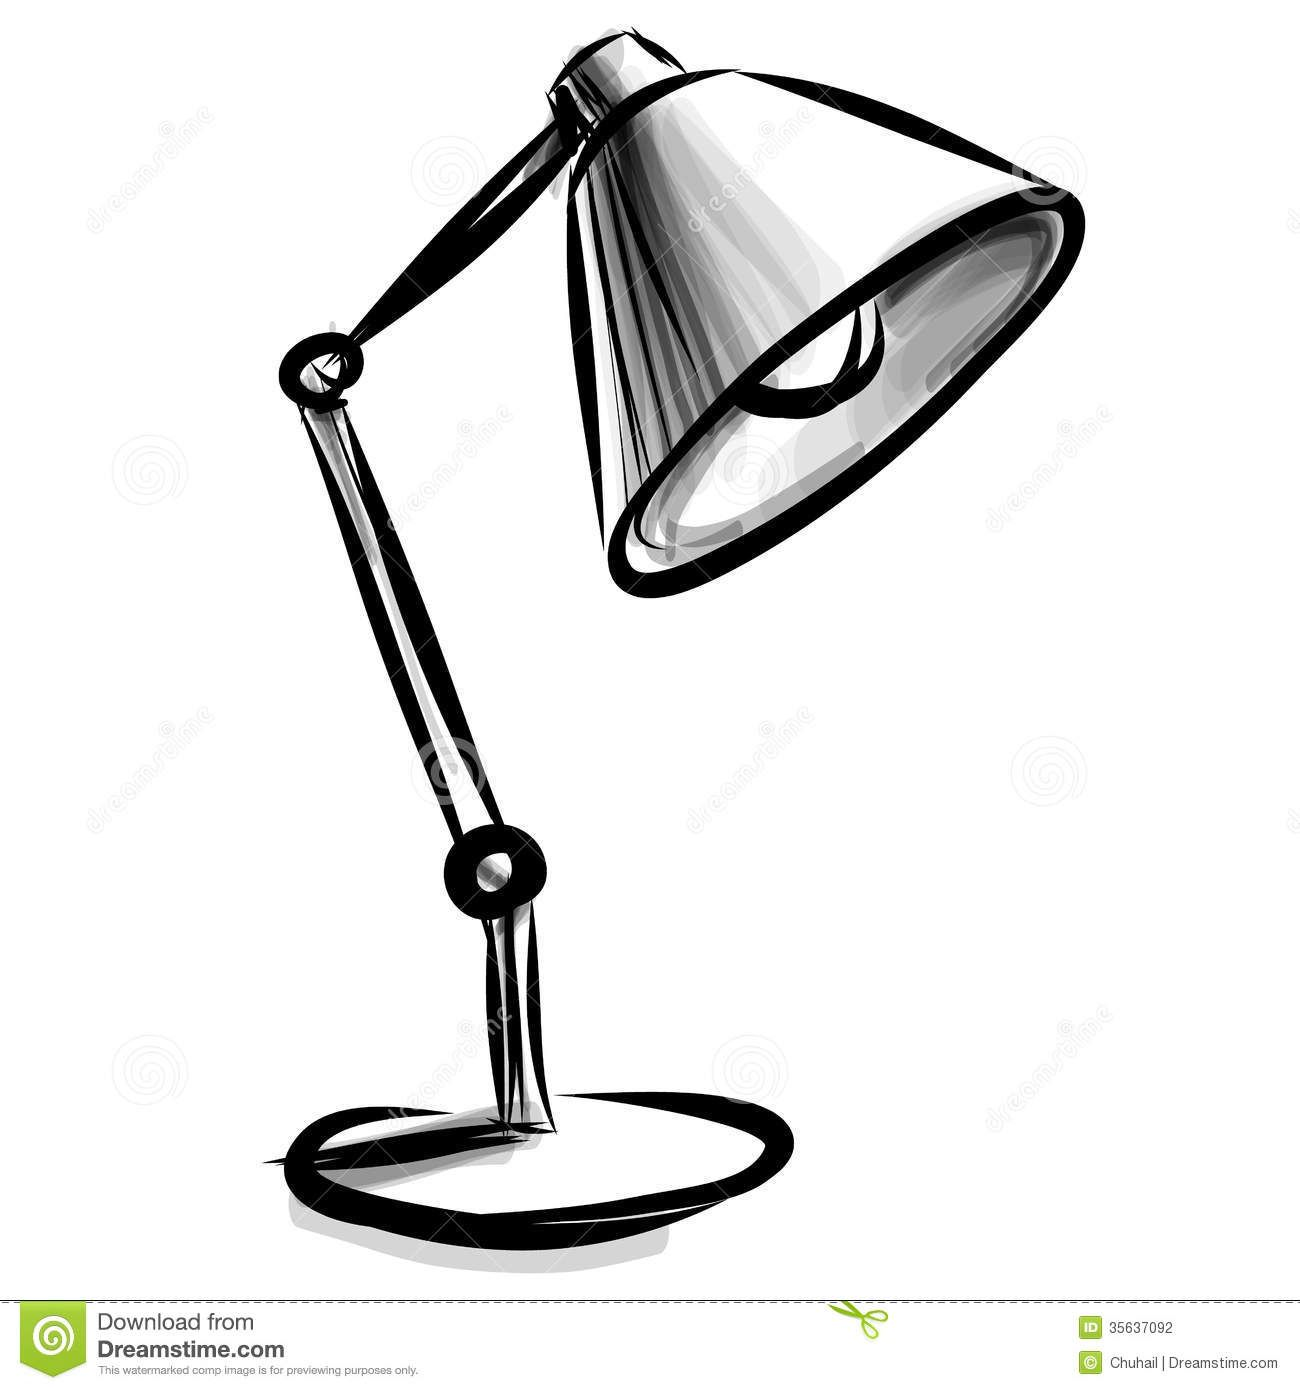 Http Thumbs Dreamstime Com Z Adjustable Table Lamp Isolated White Vector Sketch 35637092 Jpg Desk Lamp Black Table Lamps Lamp